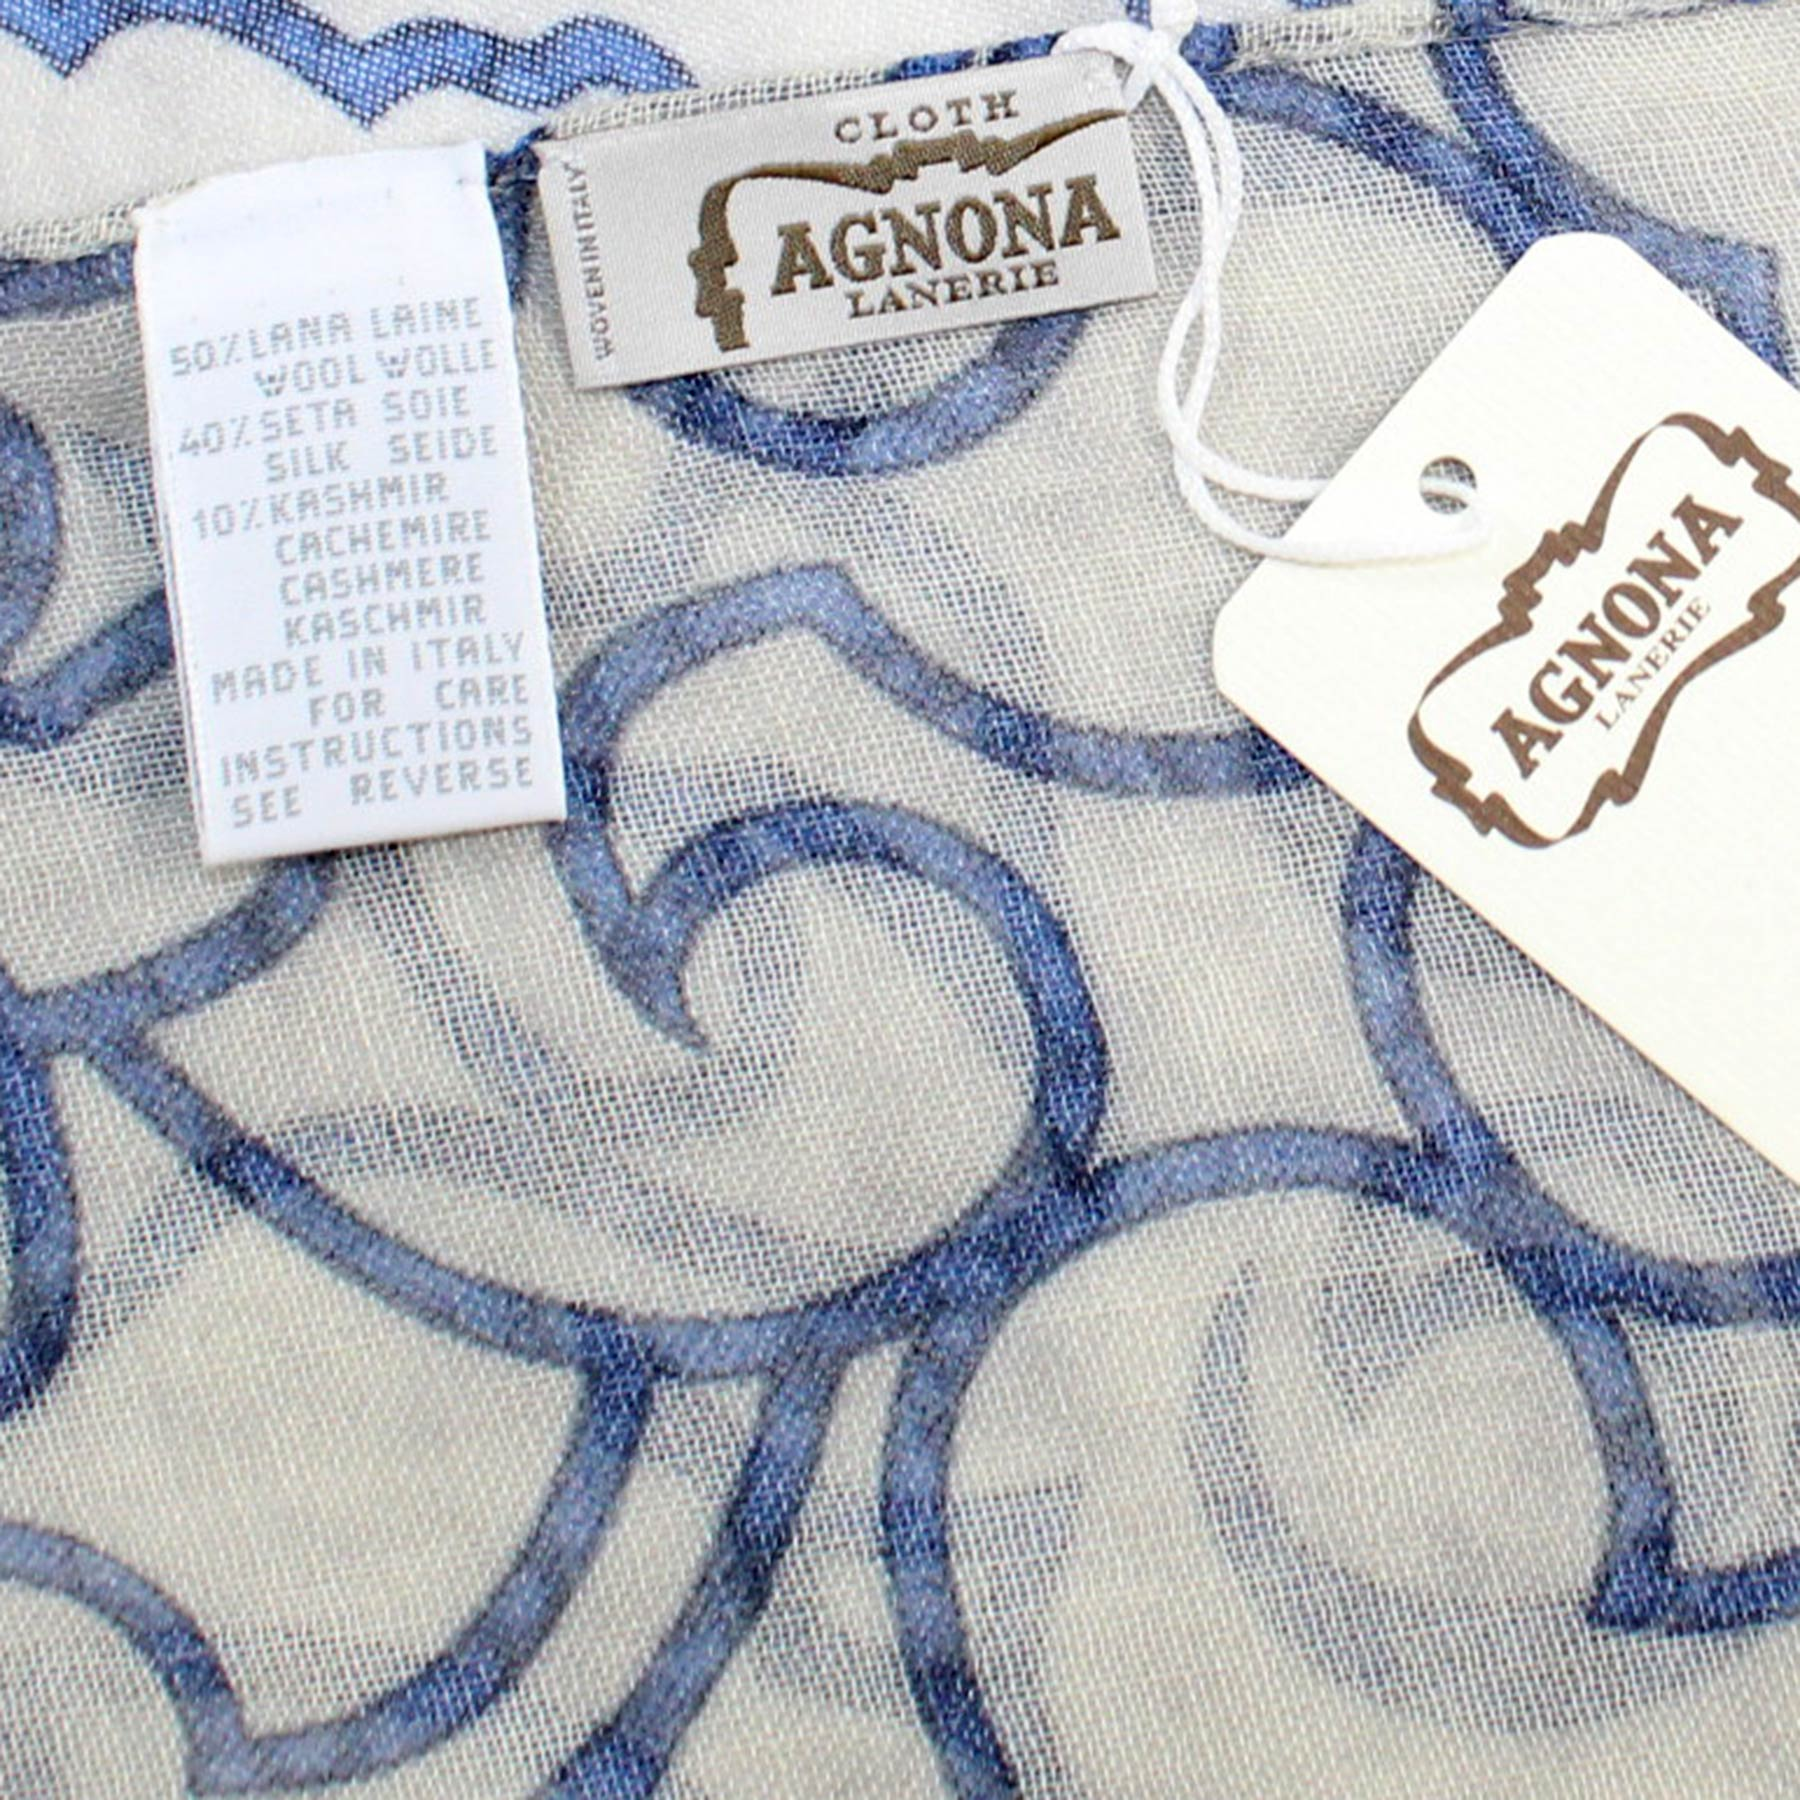 Agnona Scarf Gray Blue Design -